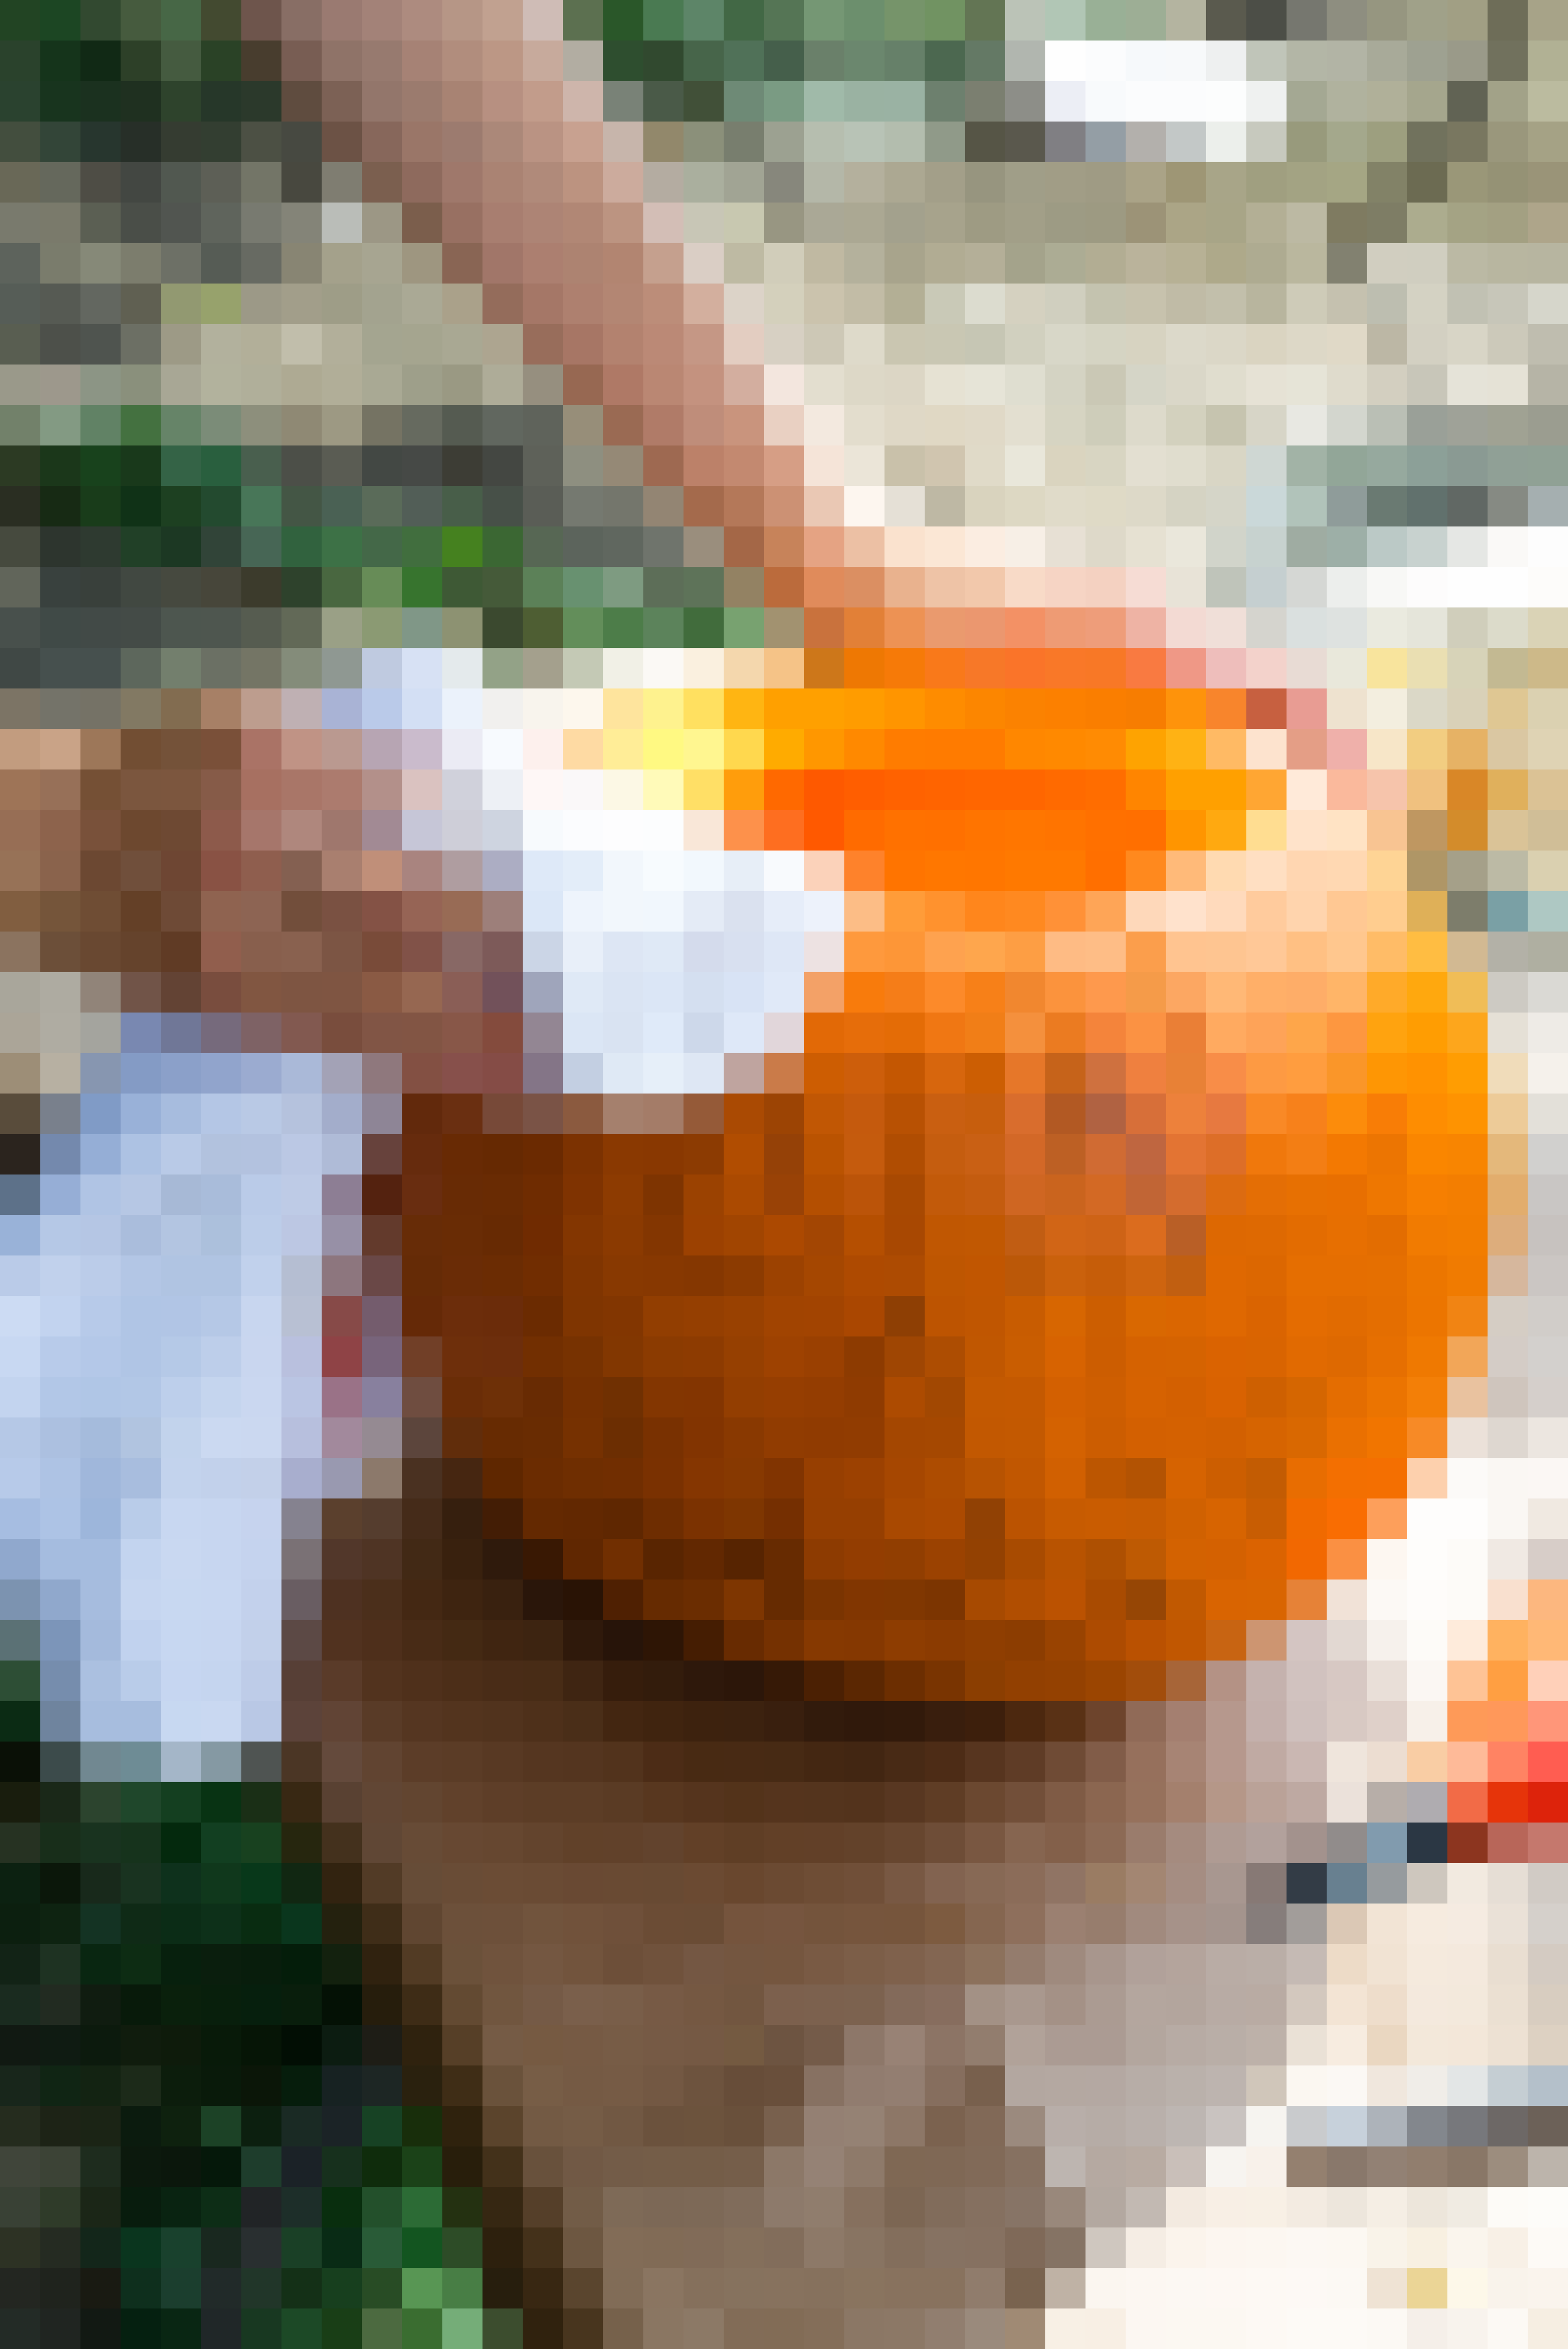 How To Carve a Pumpkin for Halloween: The Easiest, Most Foolproof Method: gallery image 7